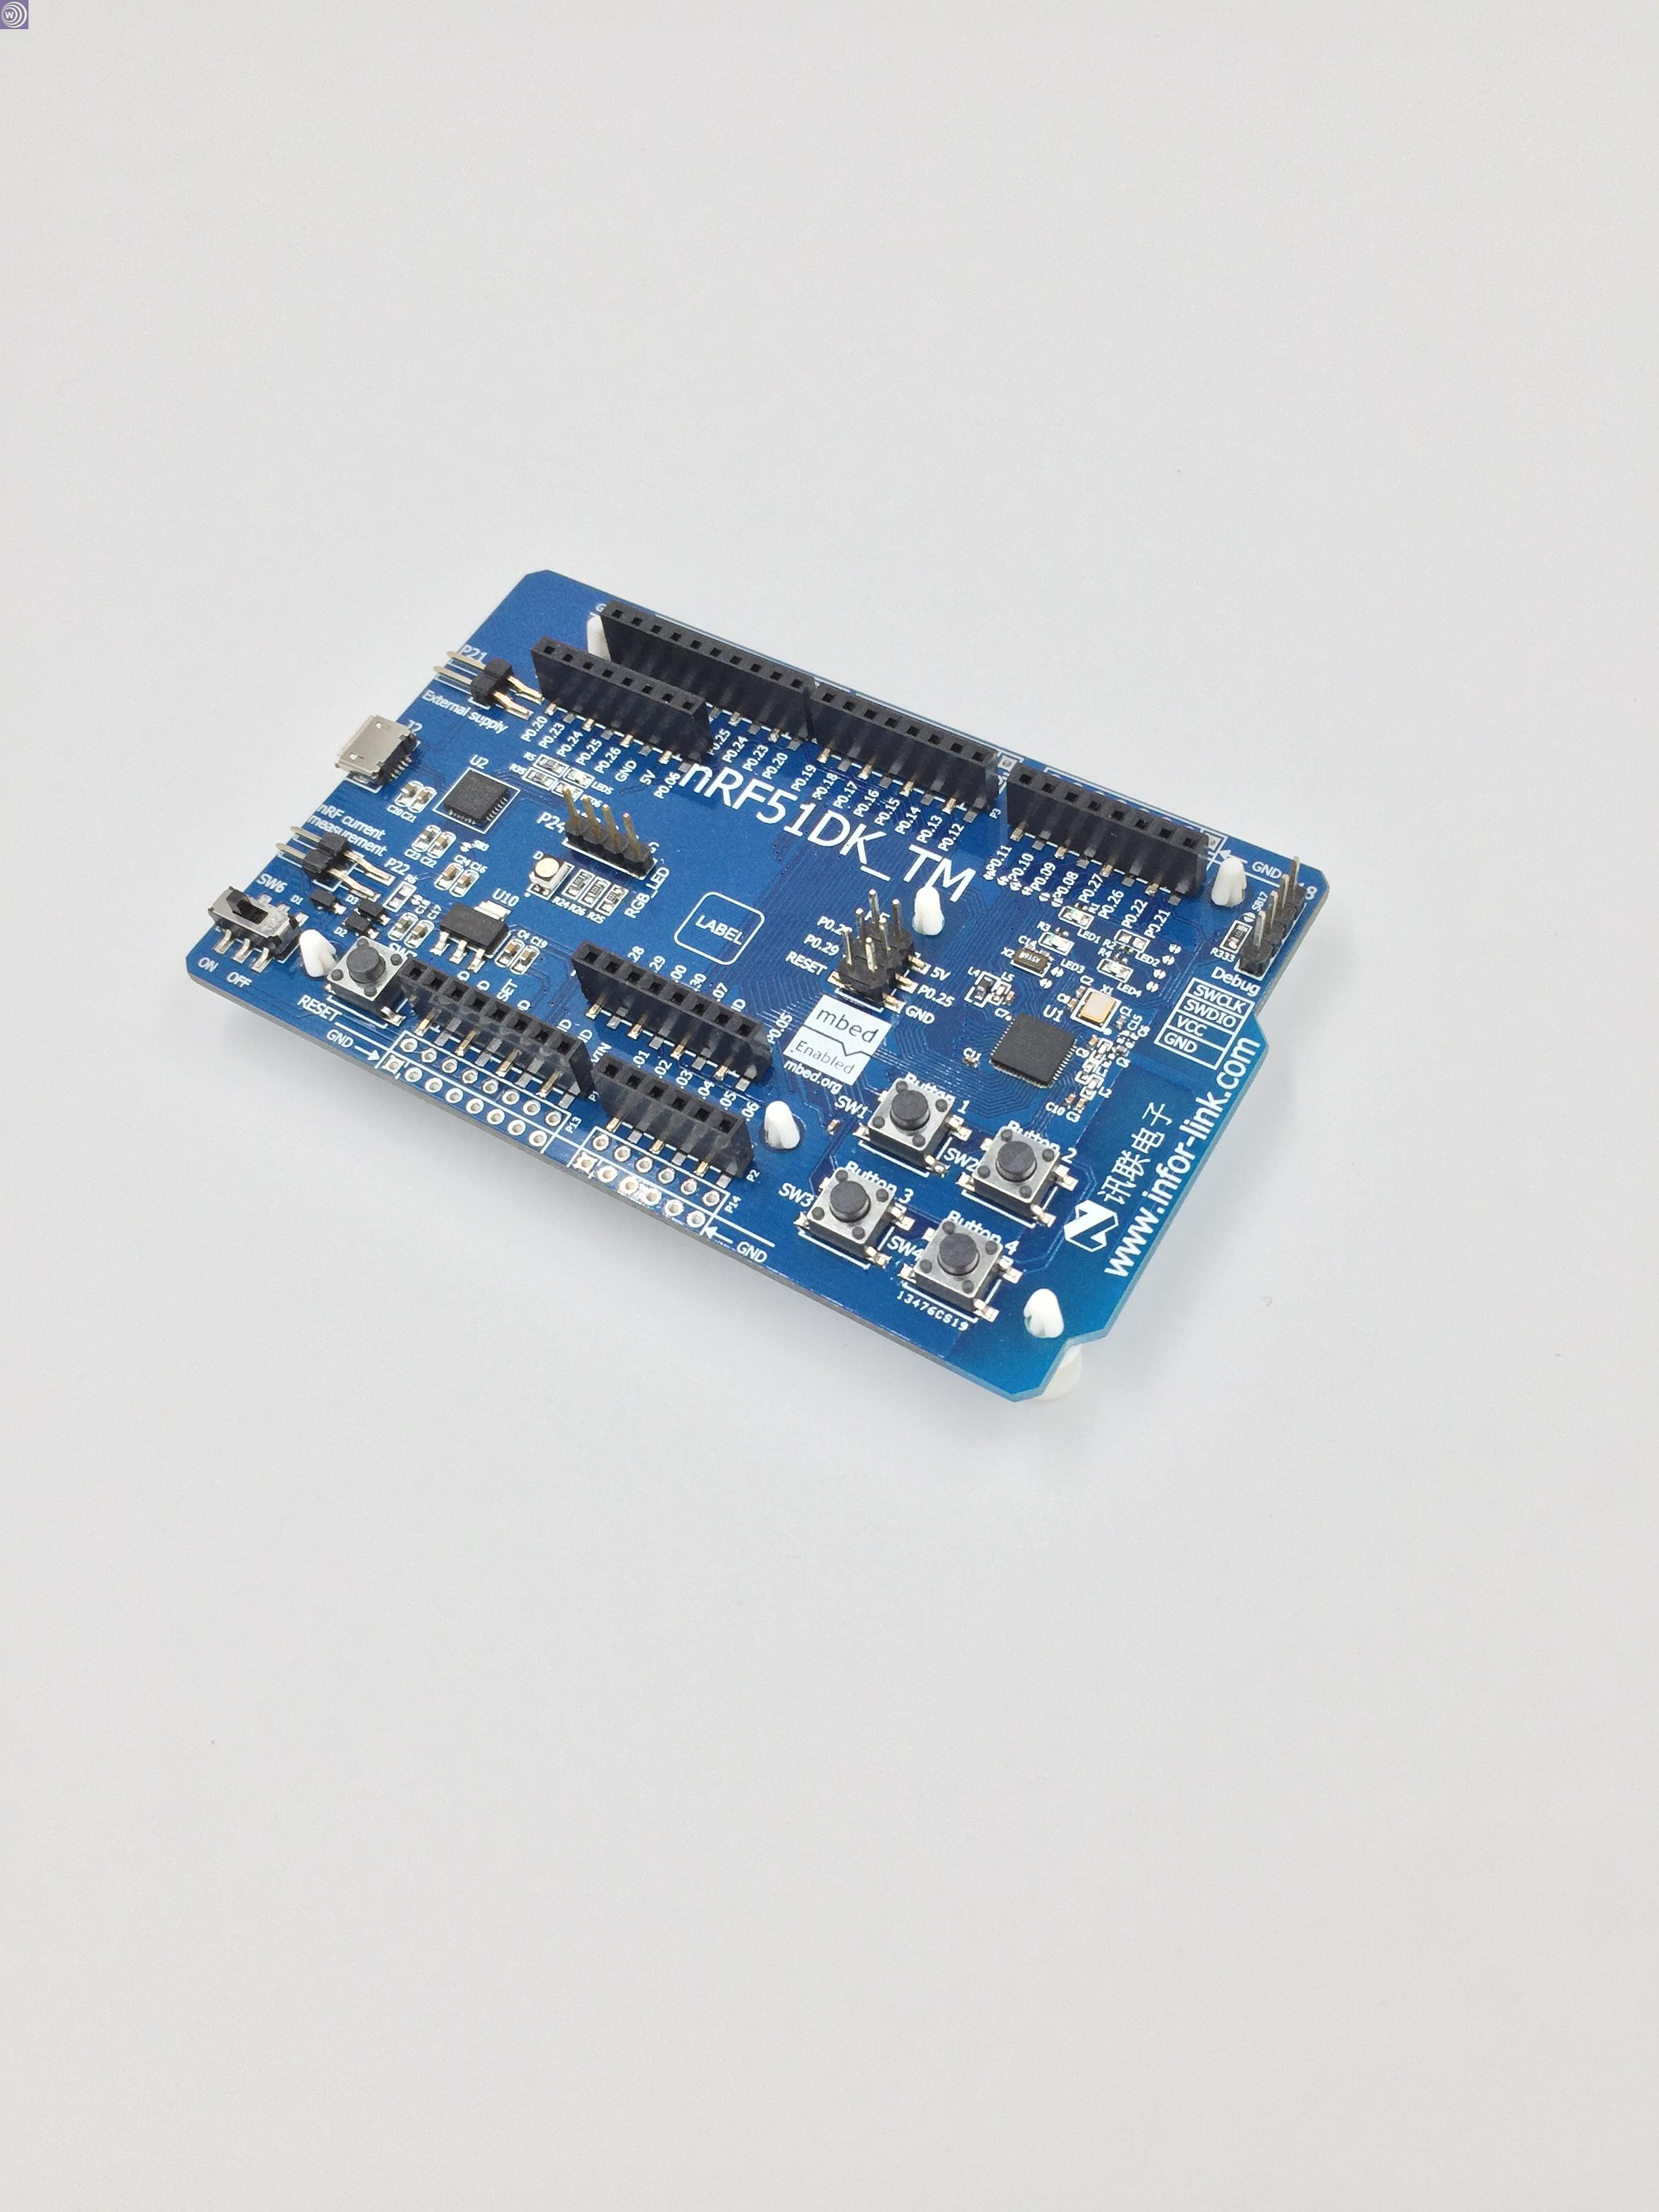 Video tutorial! Nrf51422nrf51822 nRF51DK Bluetooth ANT 4.0BLE development PCA10028 nrf52832 development board nrf52dk bluetooth ble4 2 ble ant nfc 2 4g multi protocol